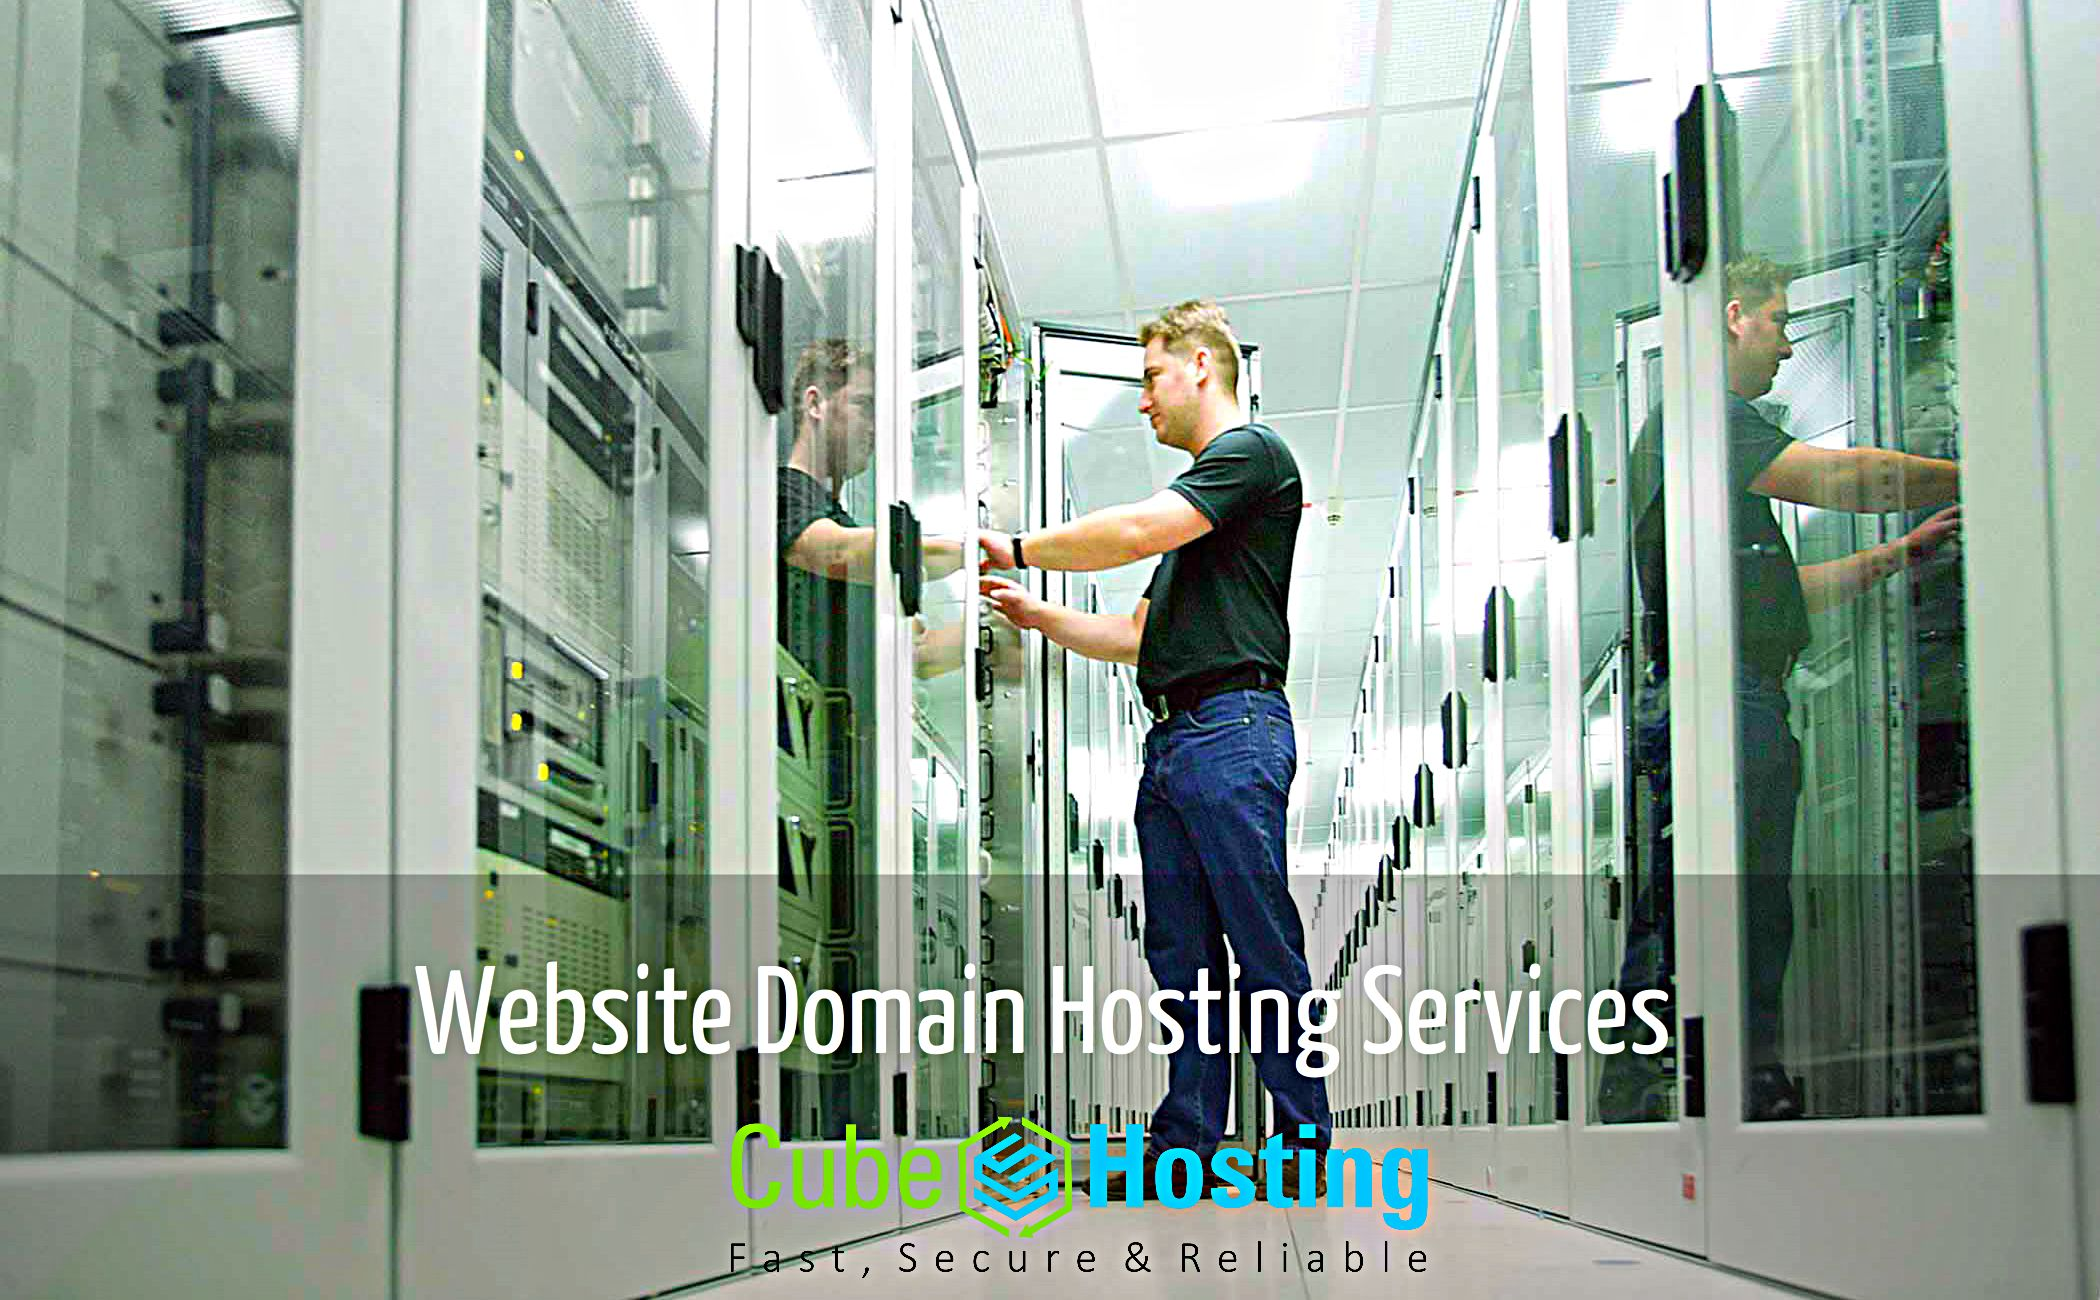 Choose CubeHosting as one of the leading #Website #Domain #Hosting services powering a host of websites - https://goo.gl/c24zf4